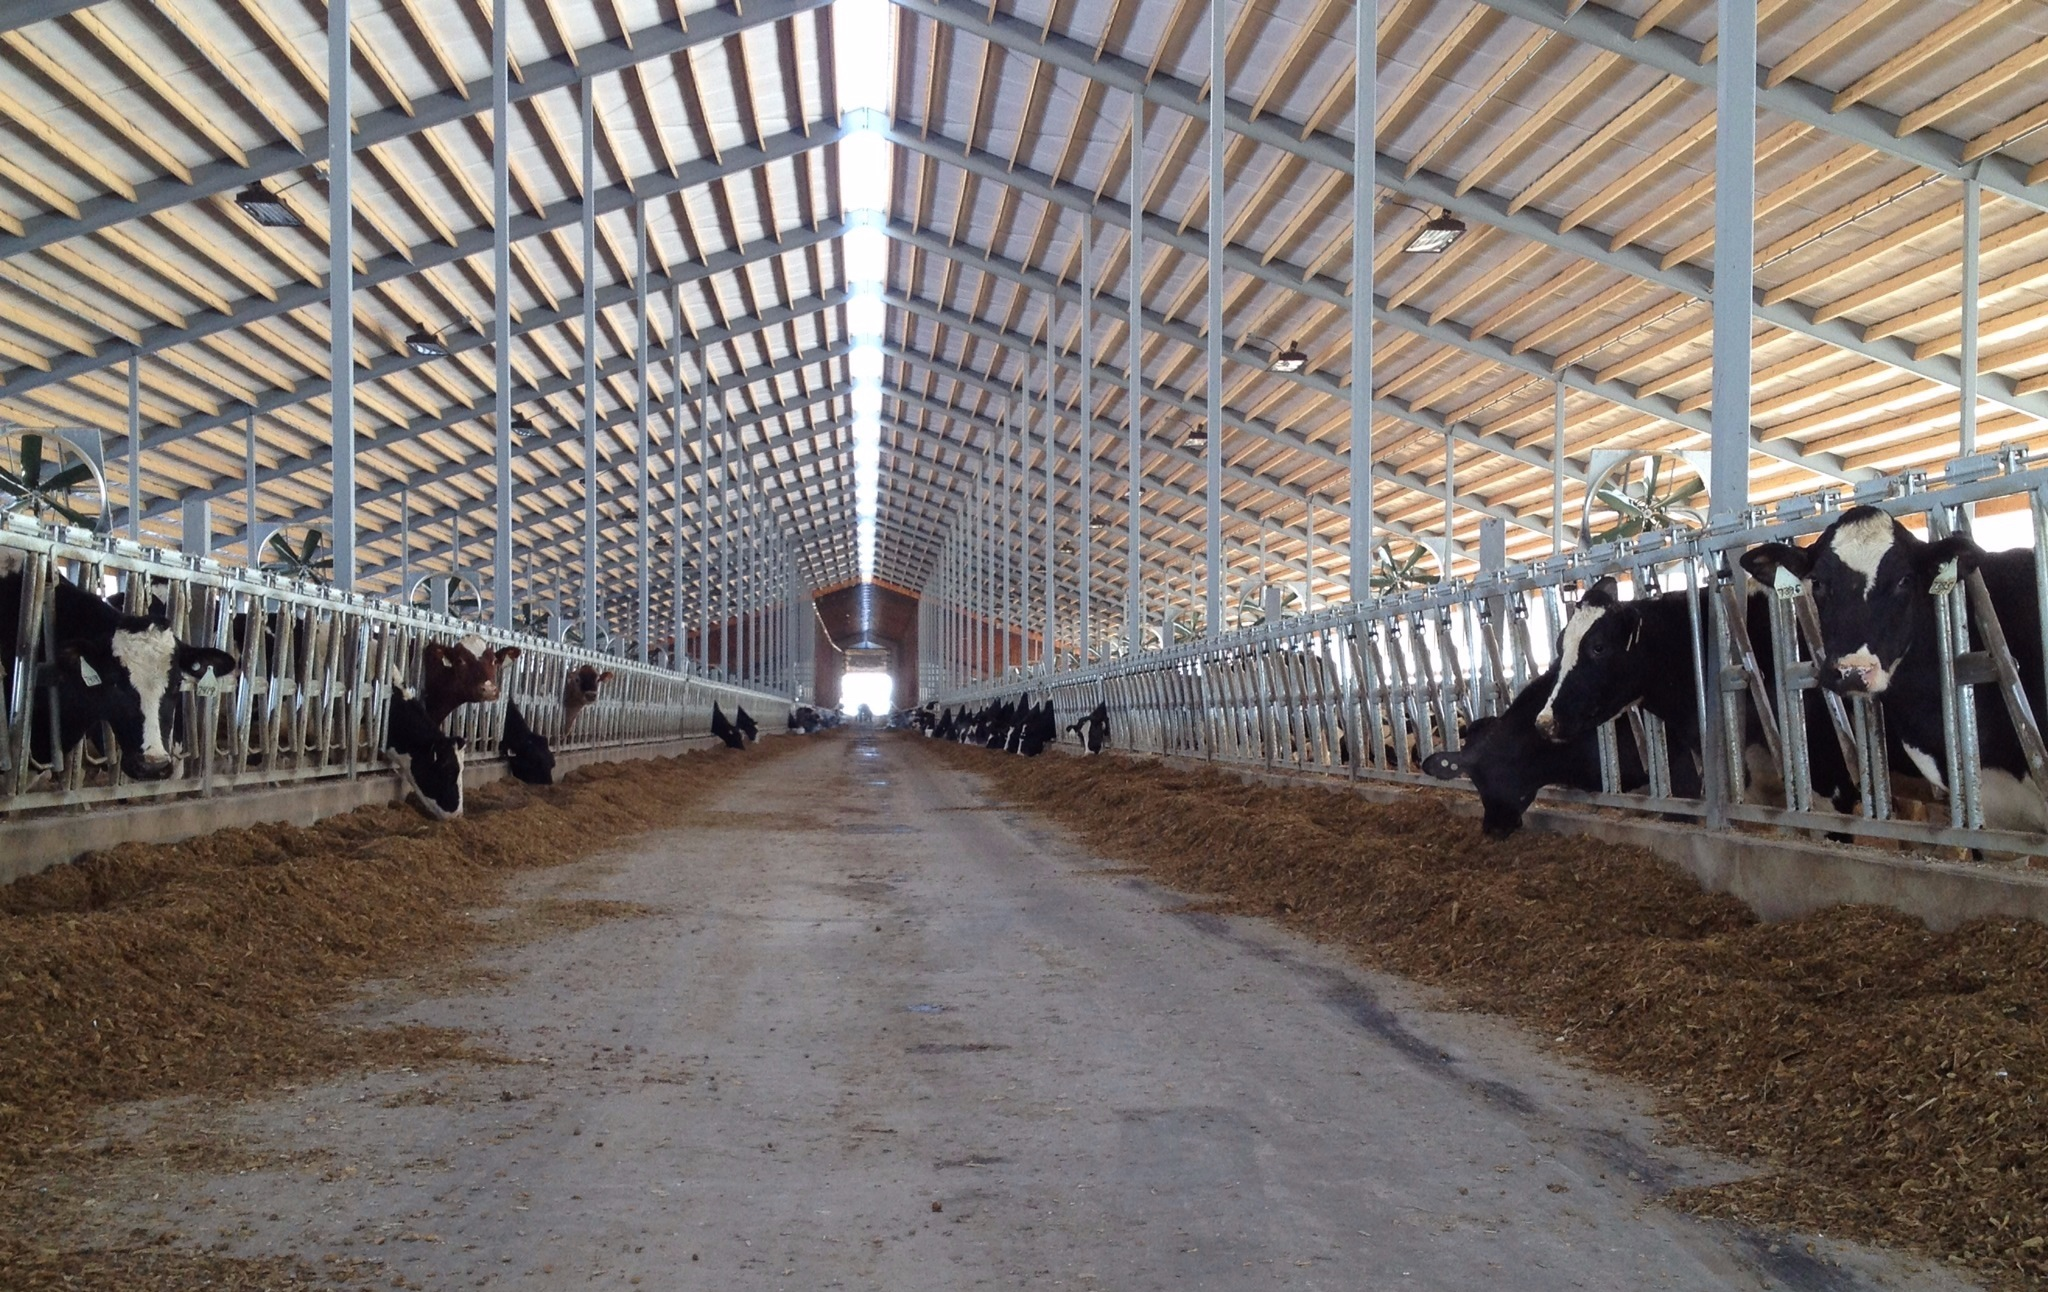 CHRISTIAN HILL DAIRY FREESTALL AND PARLOR EXPANSION - DE PERE, WI